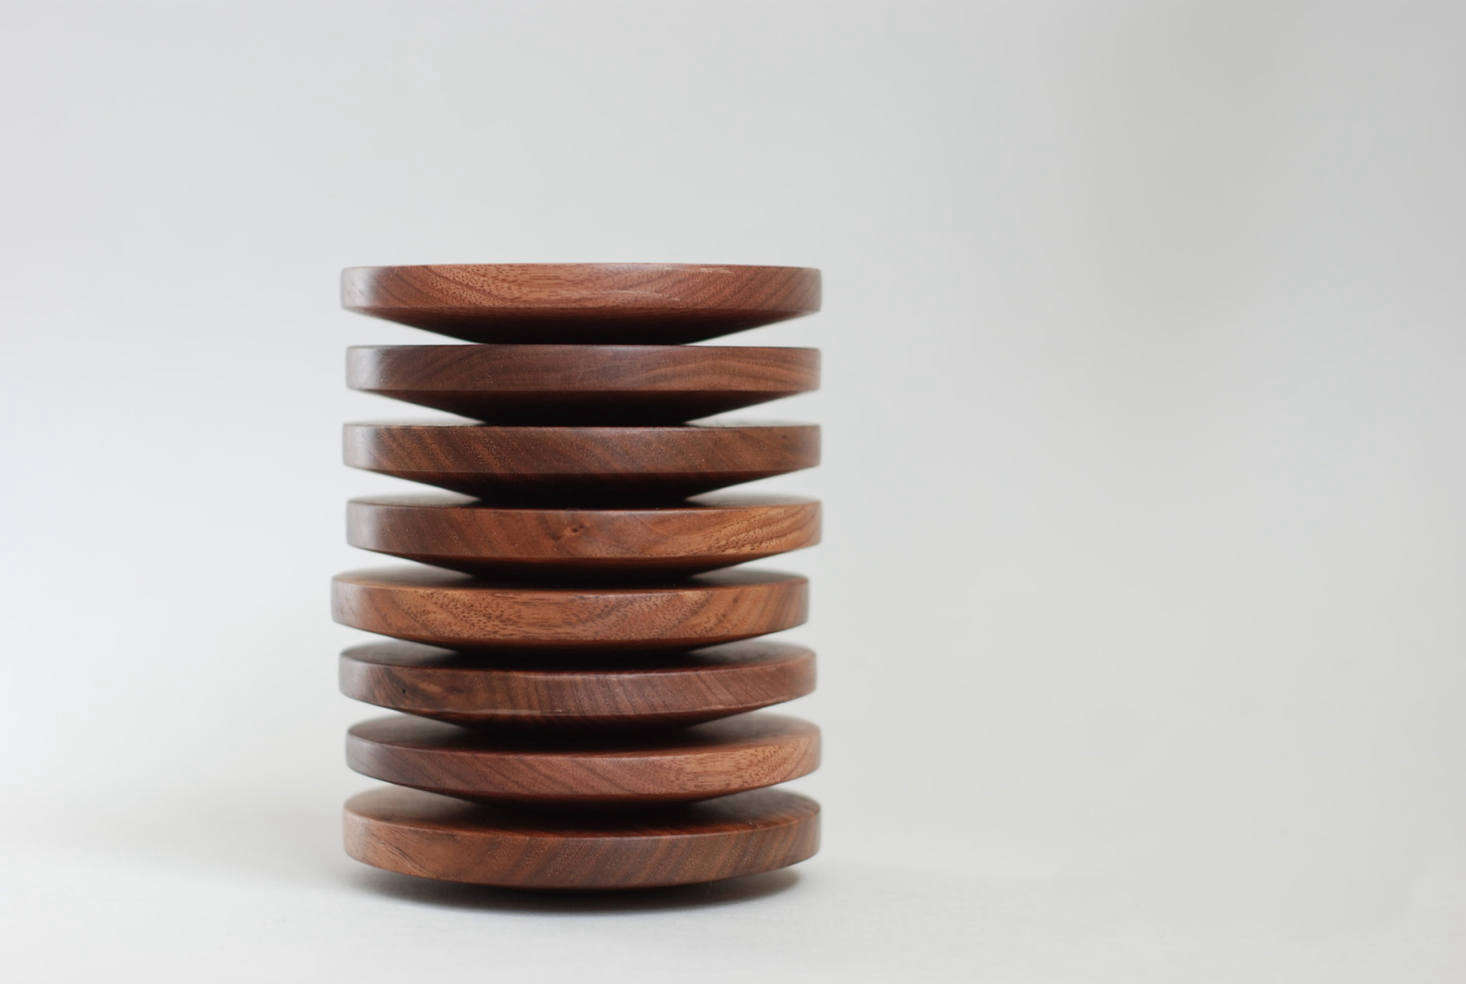 GDS also makes a Walnut Base ($56) for the Hario V60 Glass Dripper. &#8